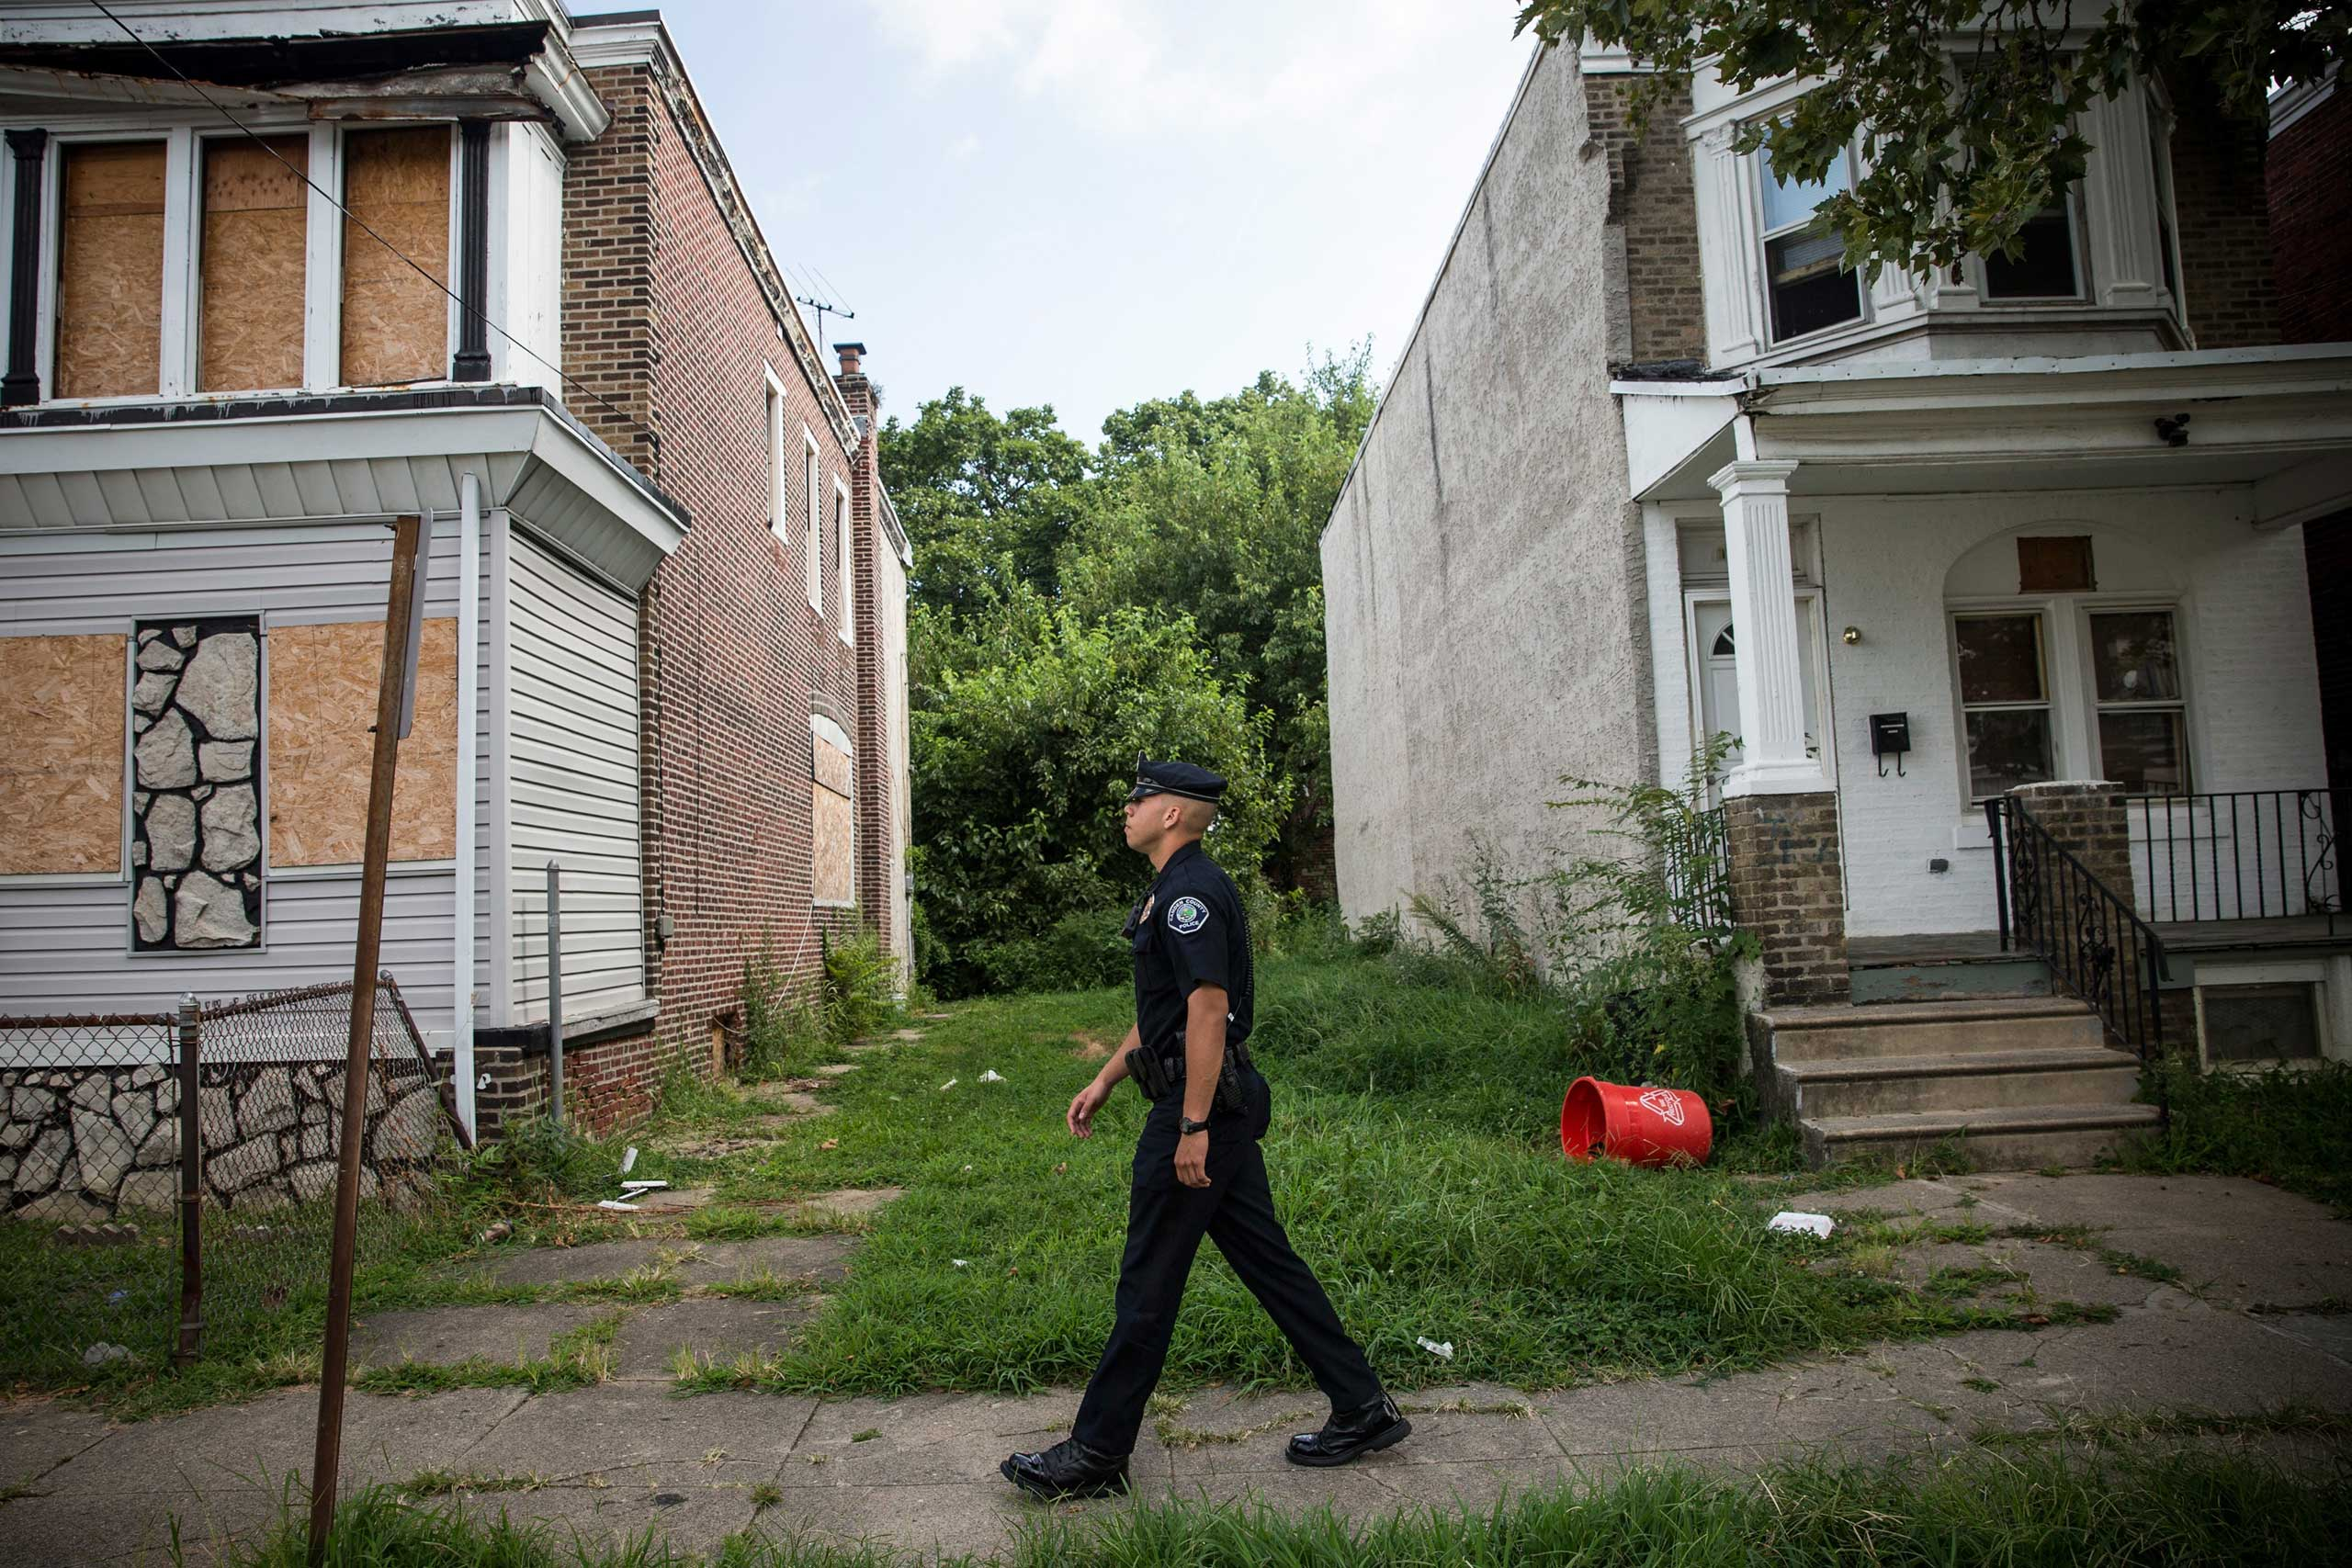 Officer Adam Fulmore, of the Camden County Police Department, goes on a foot patrol in the Parkside neighborhood of Camden, N.J. on Aug. 22, 2013.